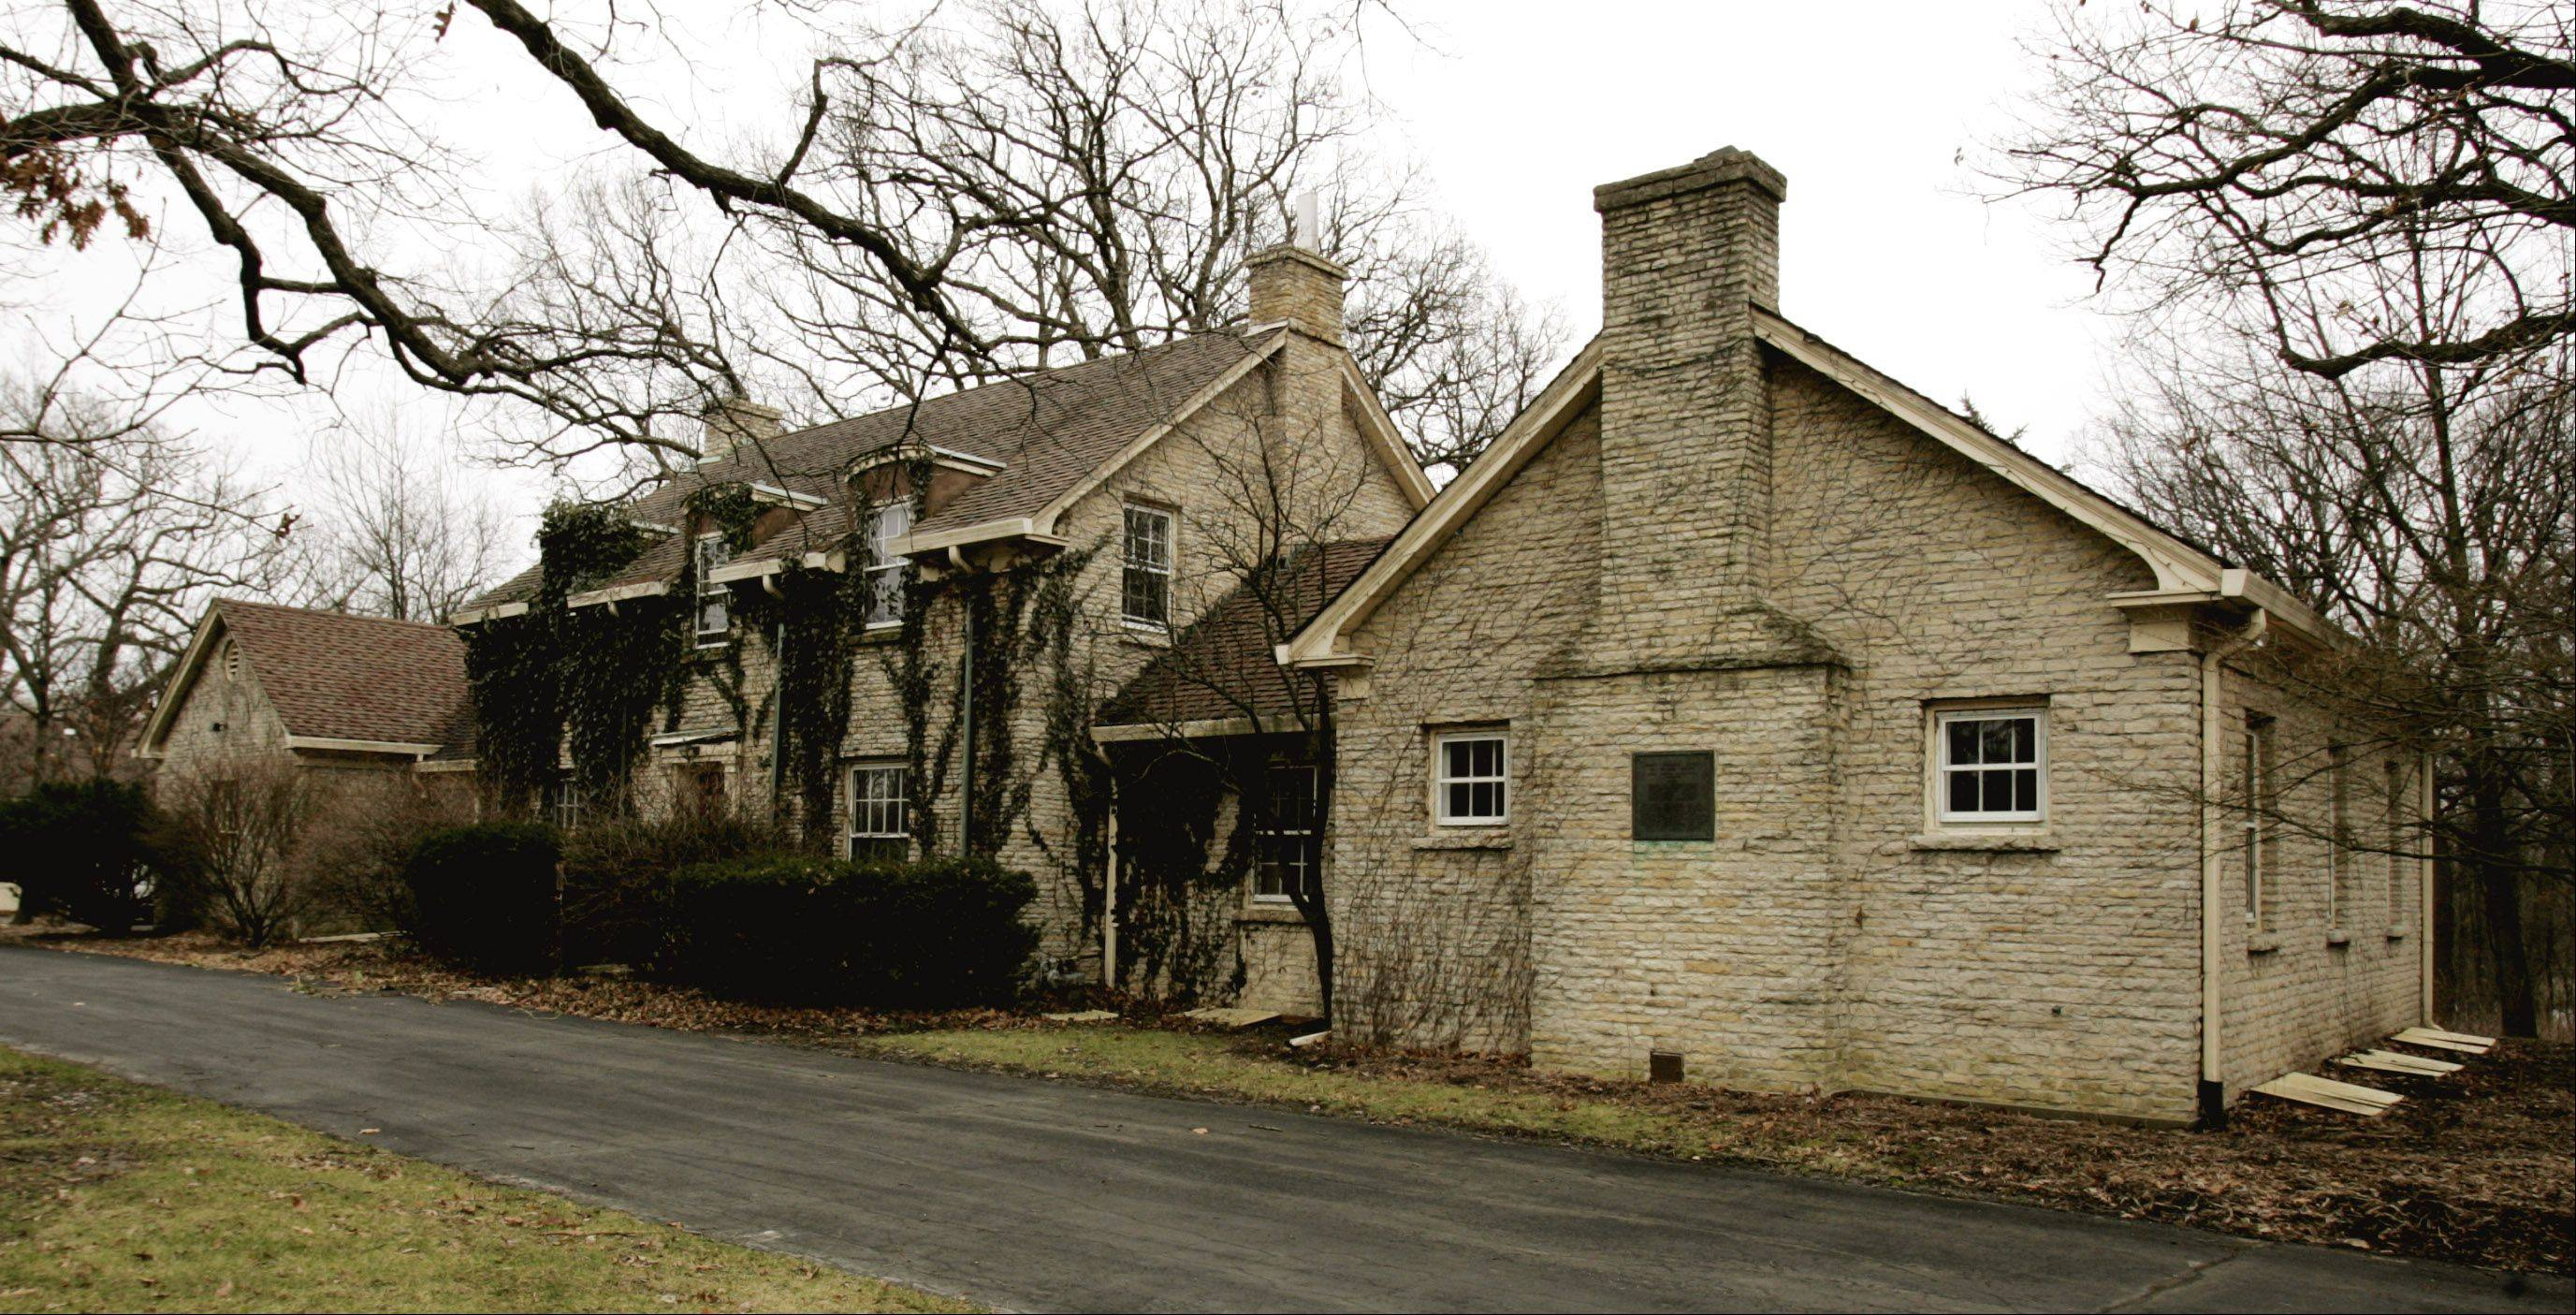 McKee House: The two-story limestone house and a neighboring administration building were constructed in 1936 by the Works Progress Administration and the Civilian Conservation Corps. Both structures were spared from the wrecking ball in 2006 but are in disrepair.